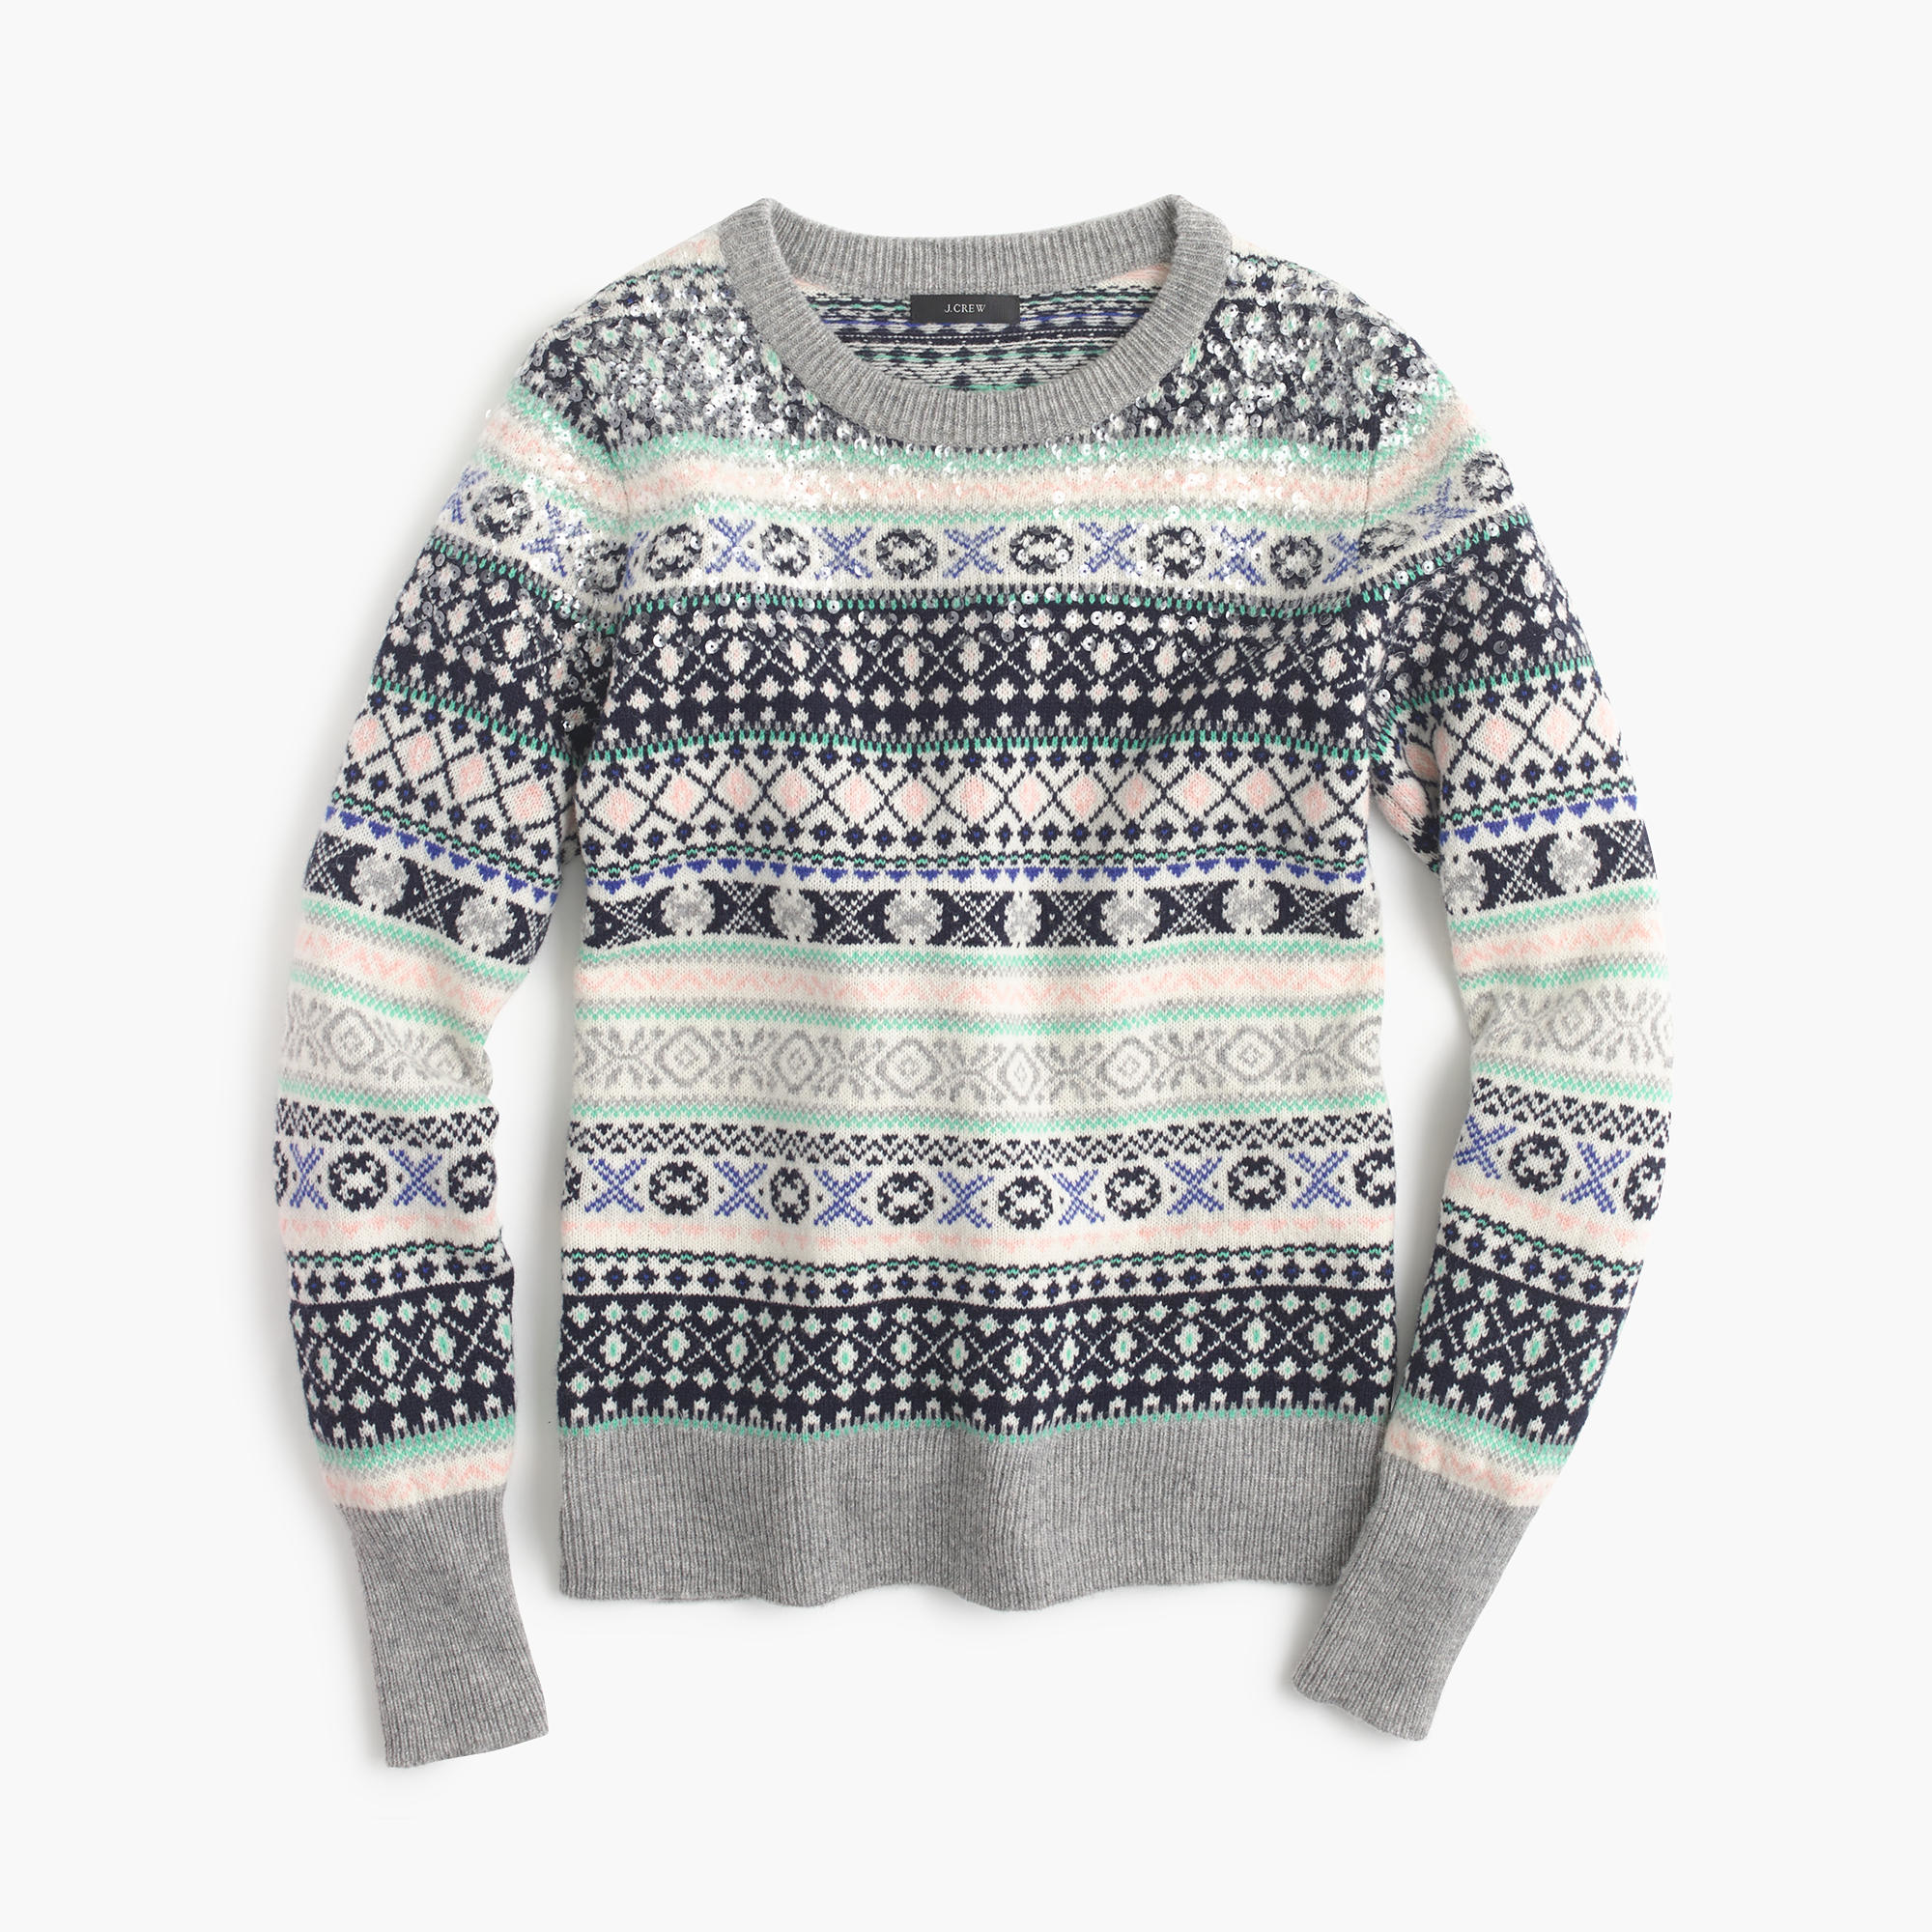 Fair Isle Sweater | Fair Isle Sweater Girls | Joie Fair Isle Sweater